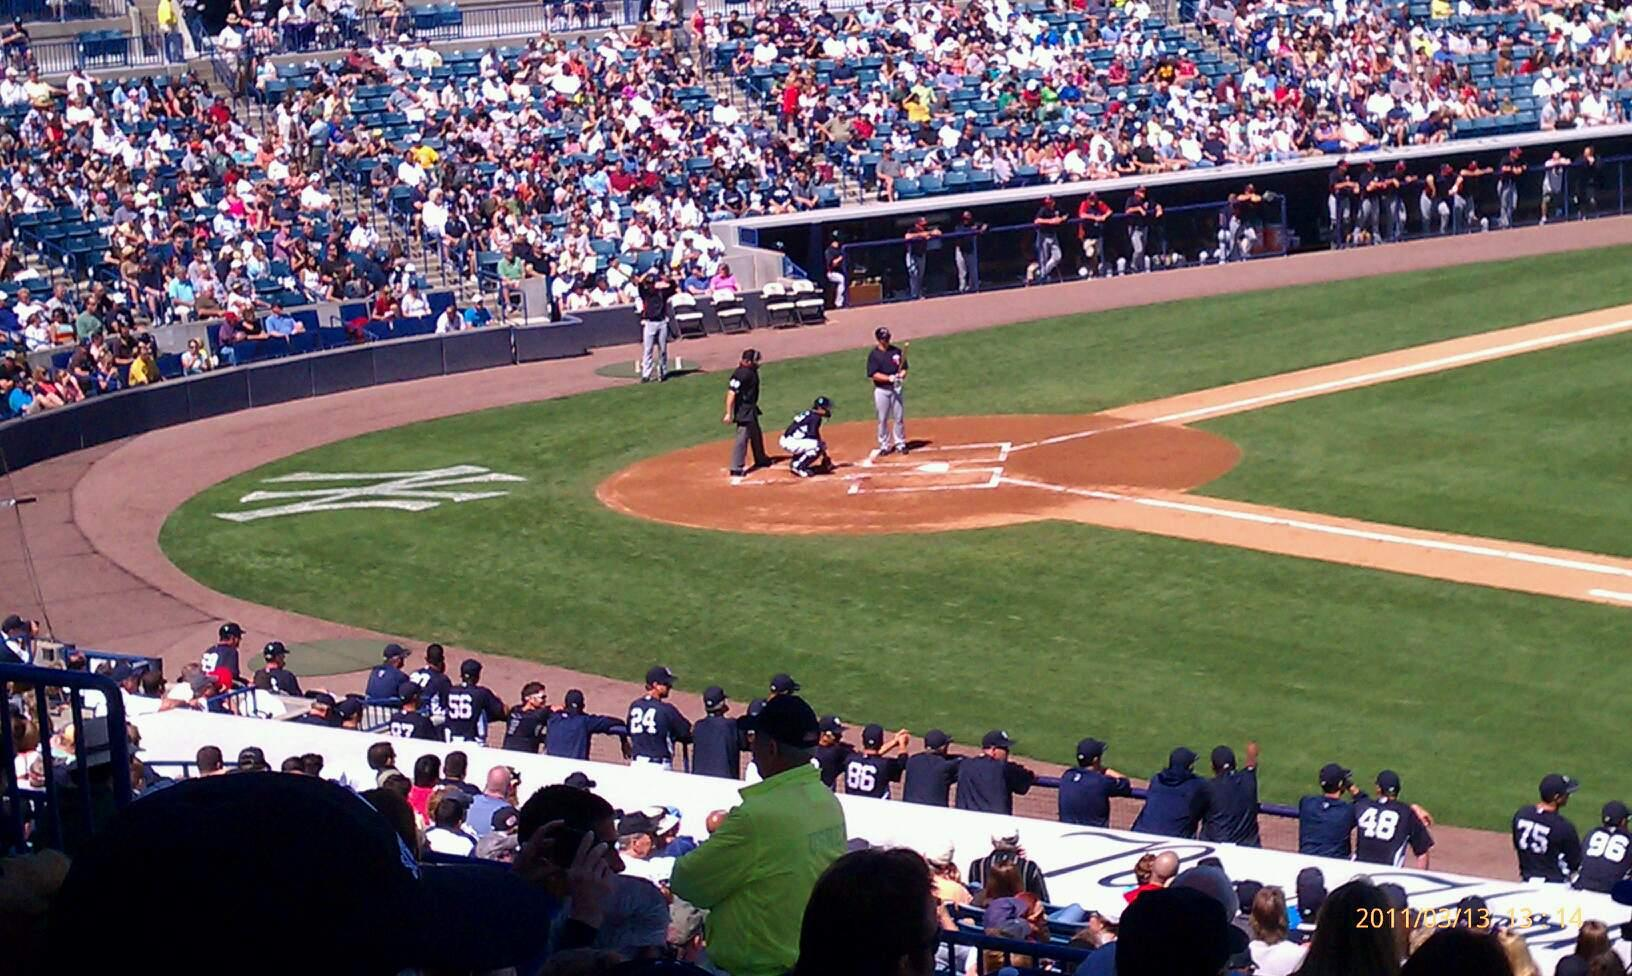 George M. Steinbrenner Field Section 205 Row j Seat 9